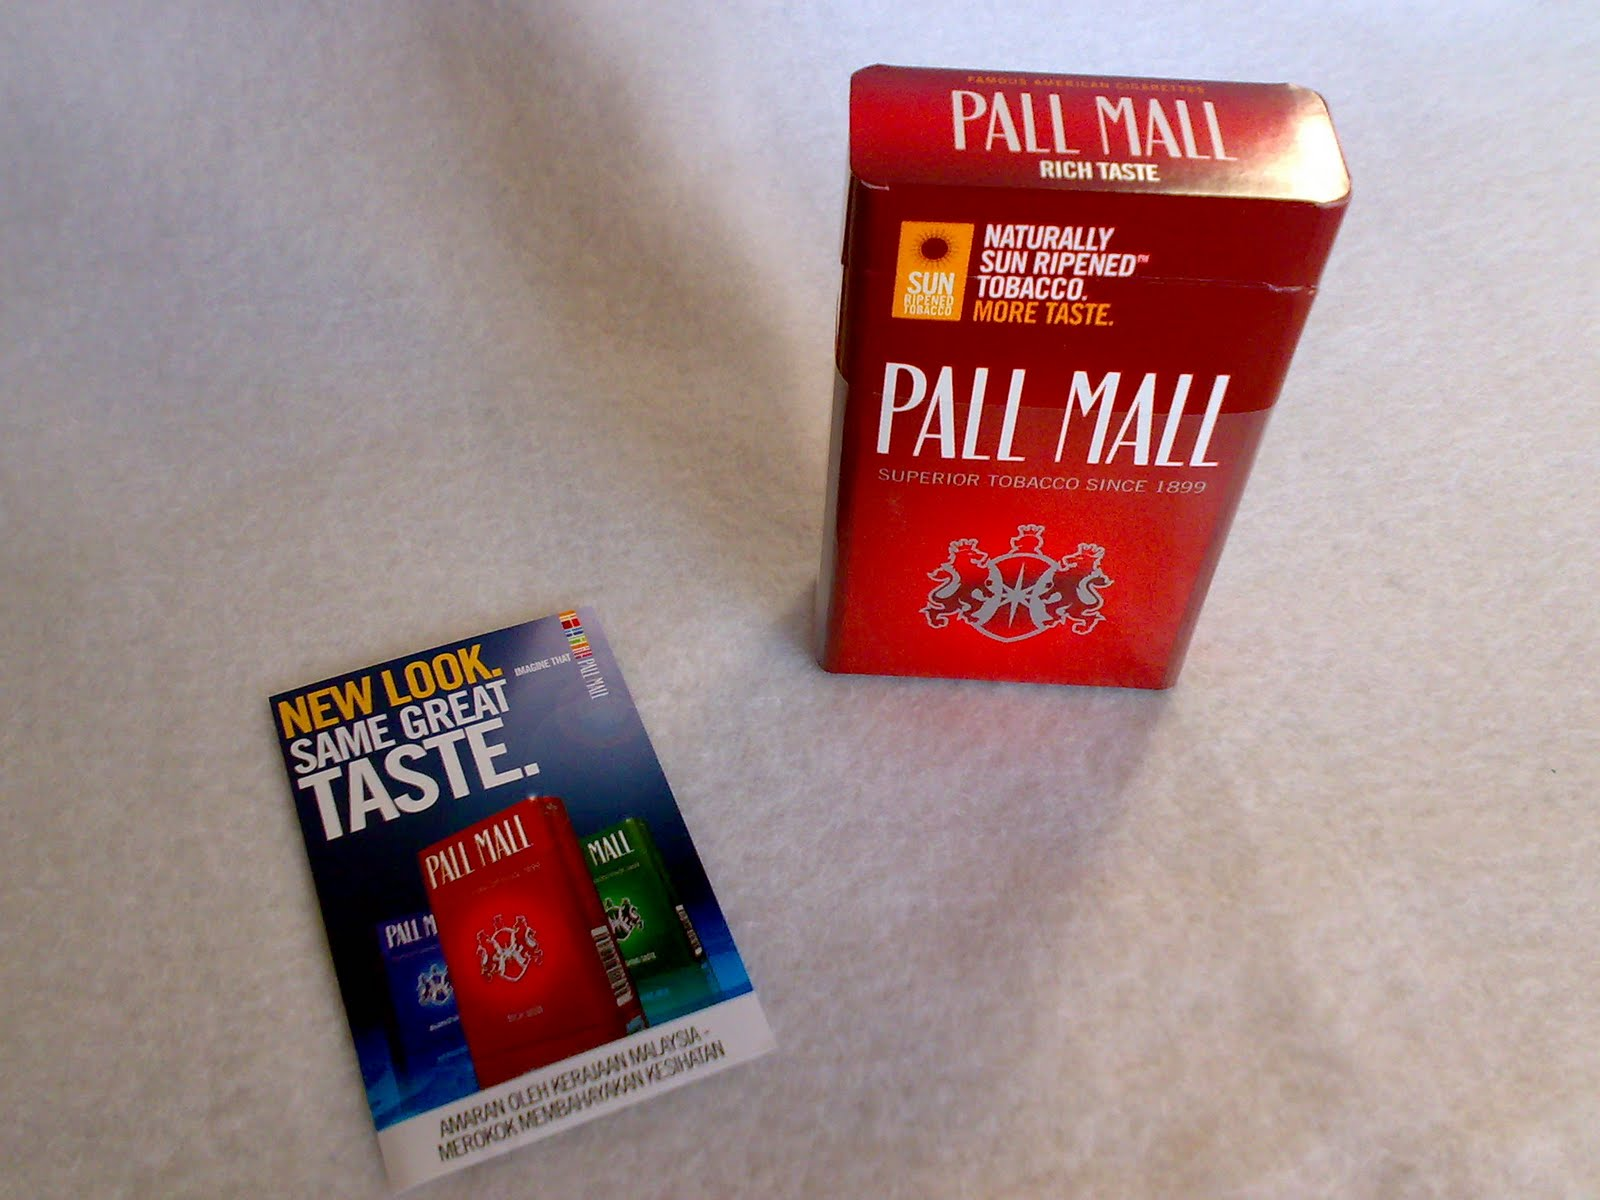 List of cigarettes Lucky Strike brands and price in Ireland